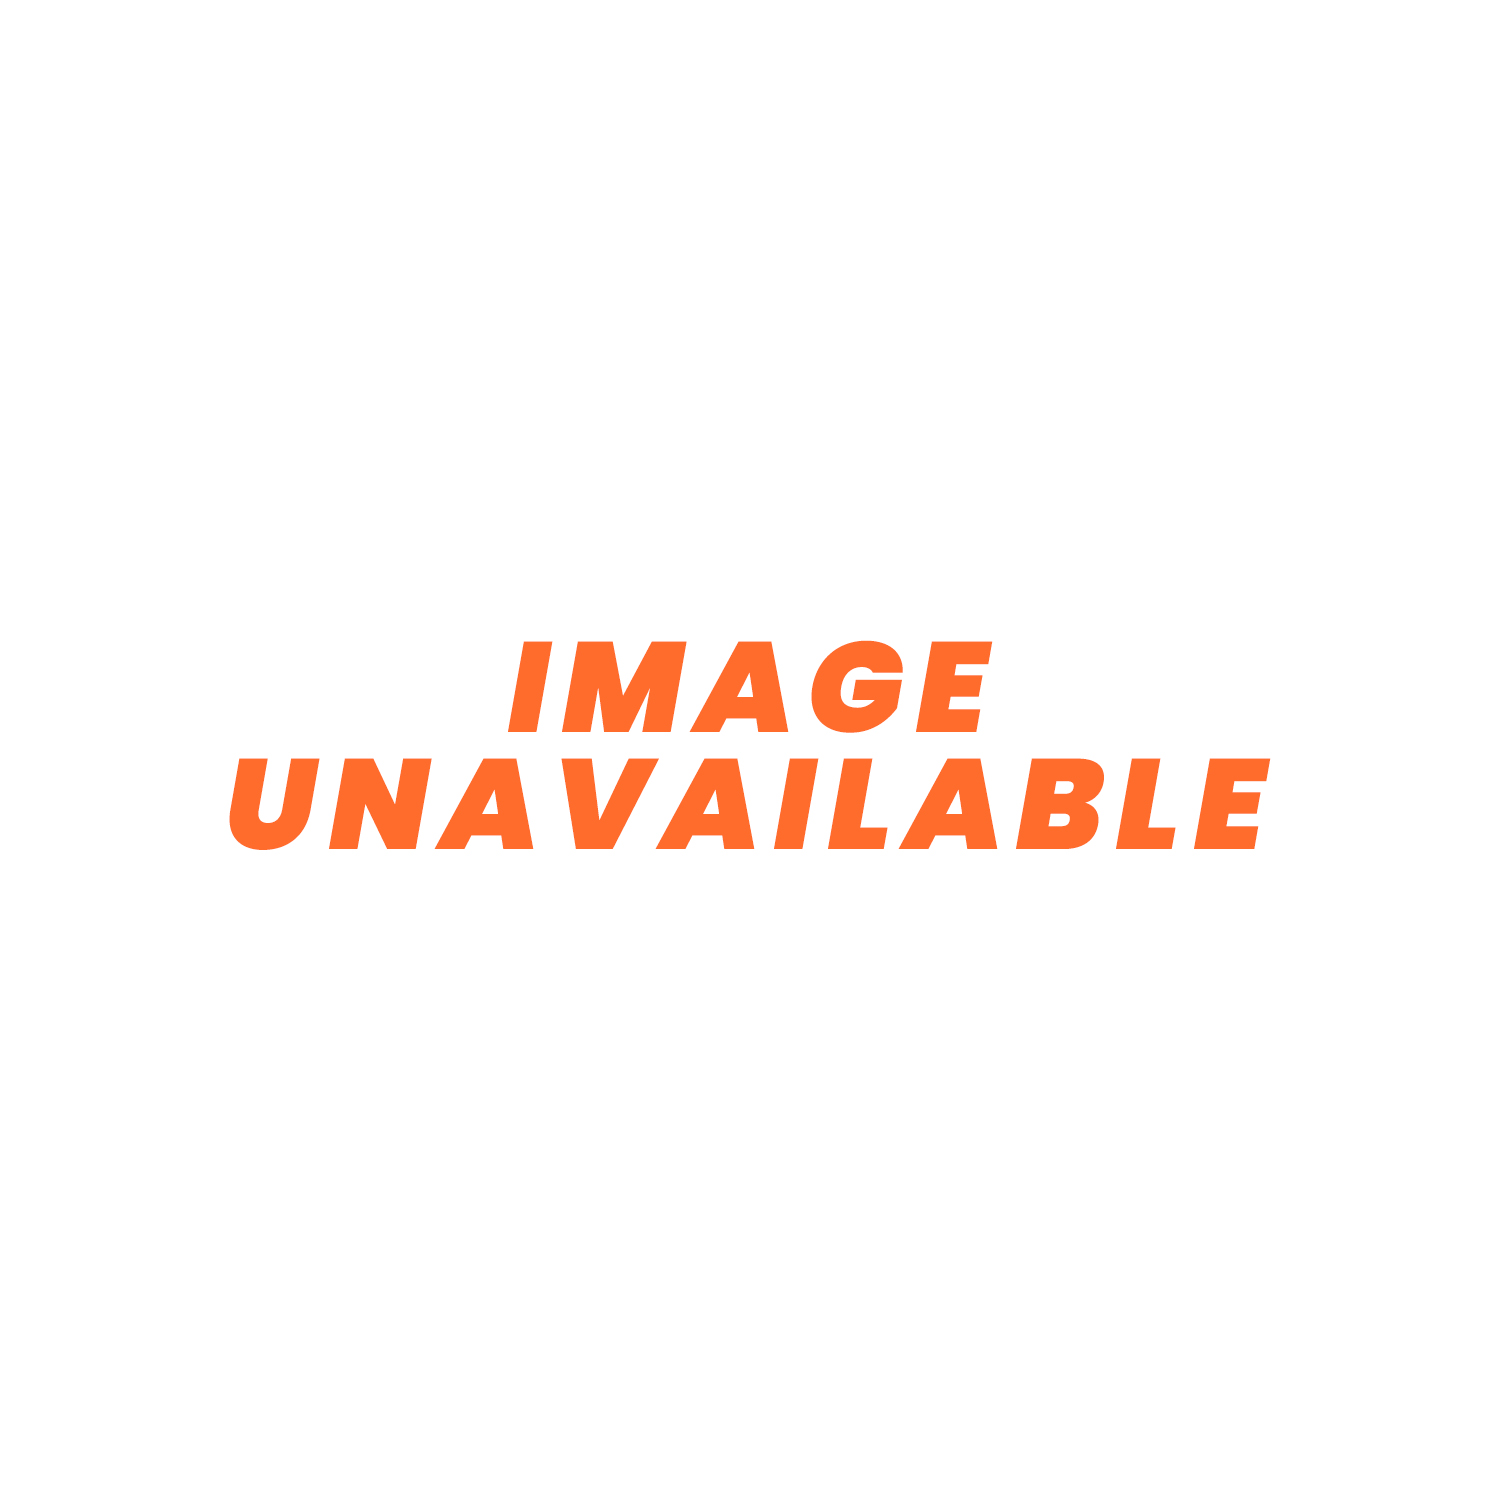 6.1kw Cubby Heater - 24v Front